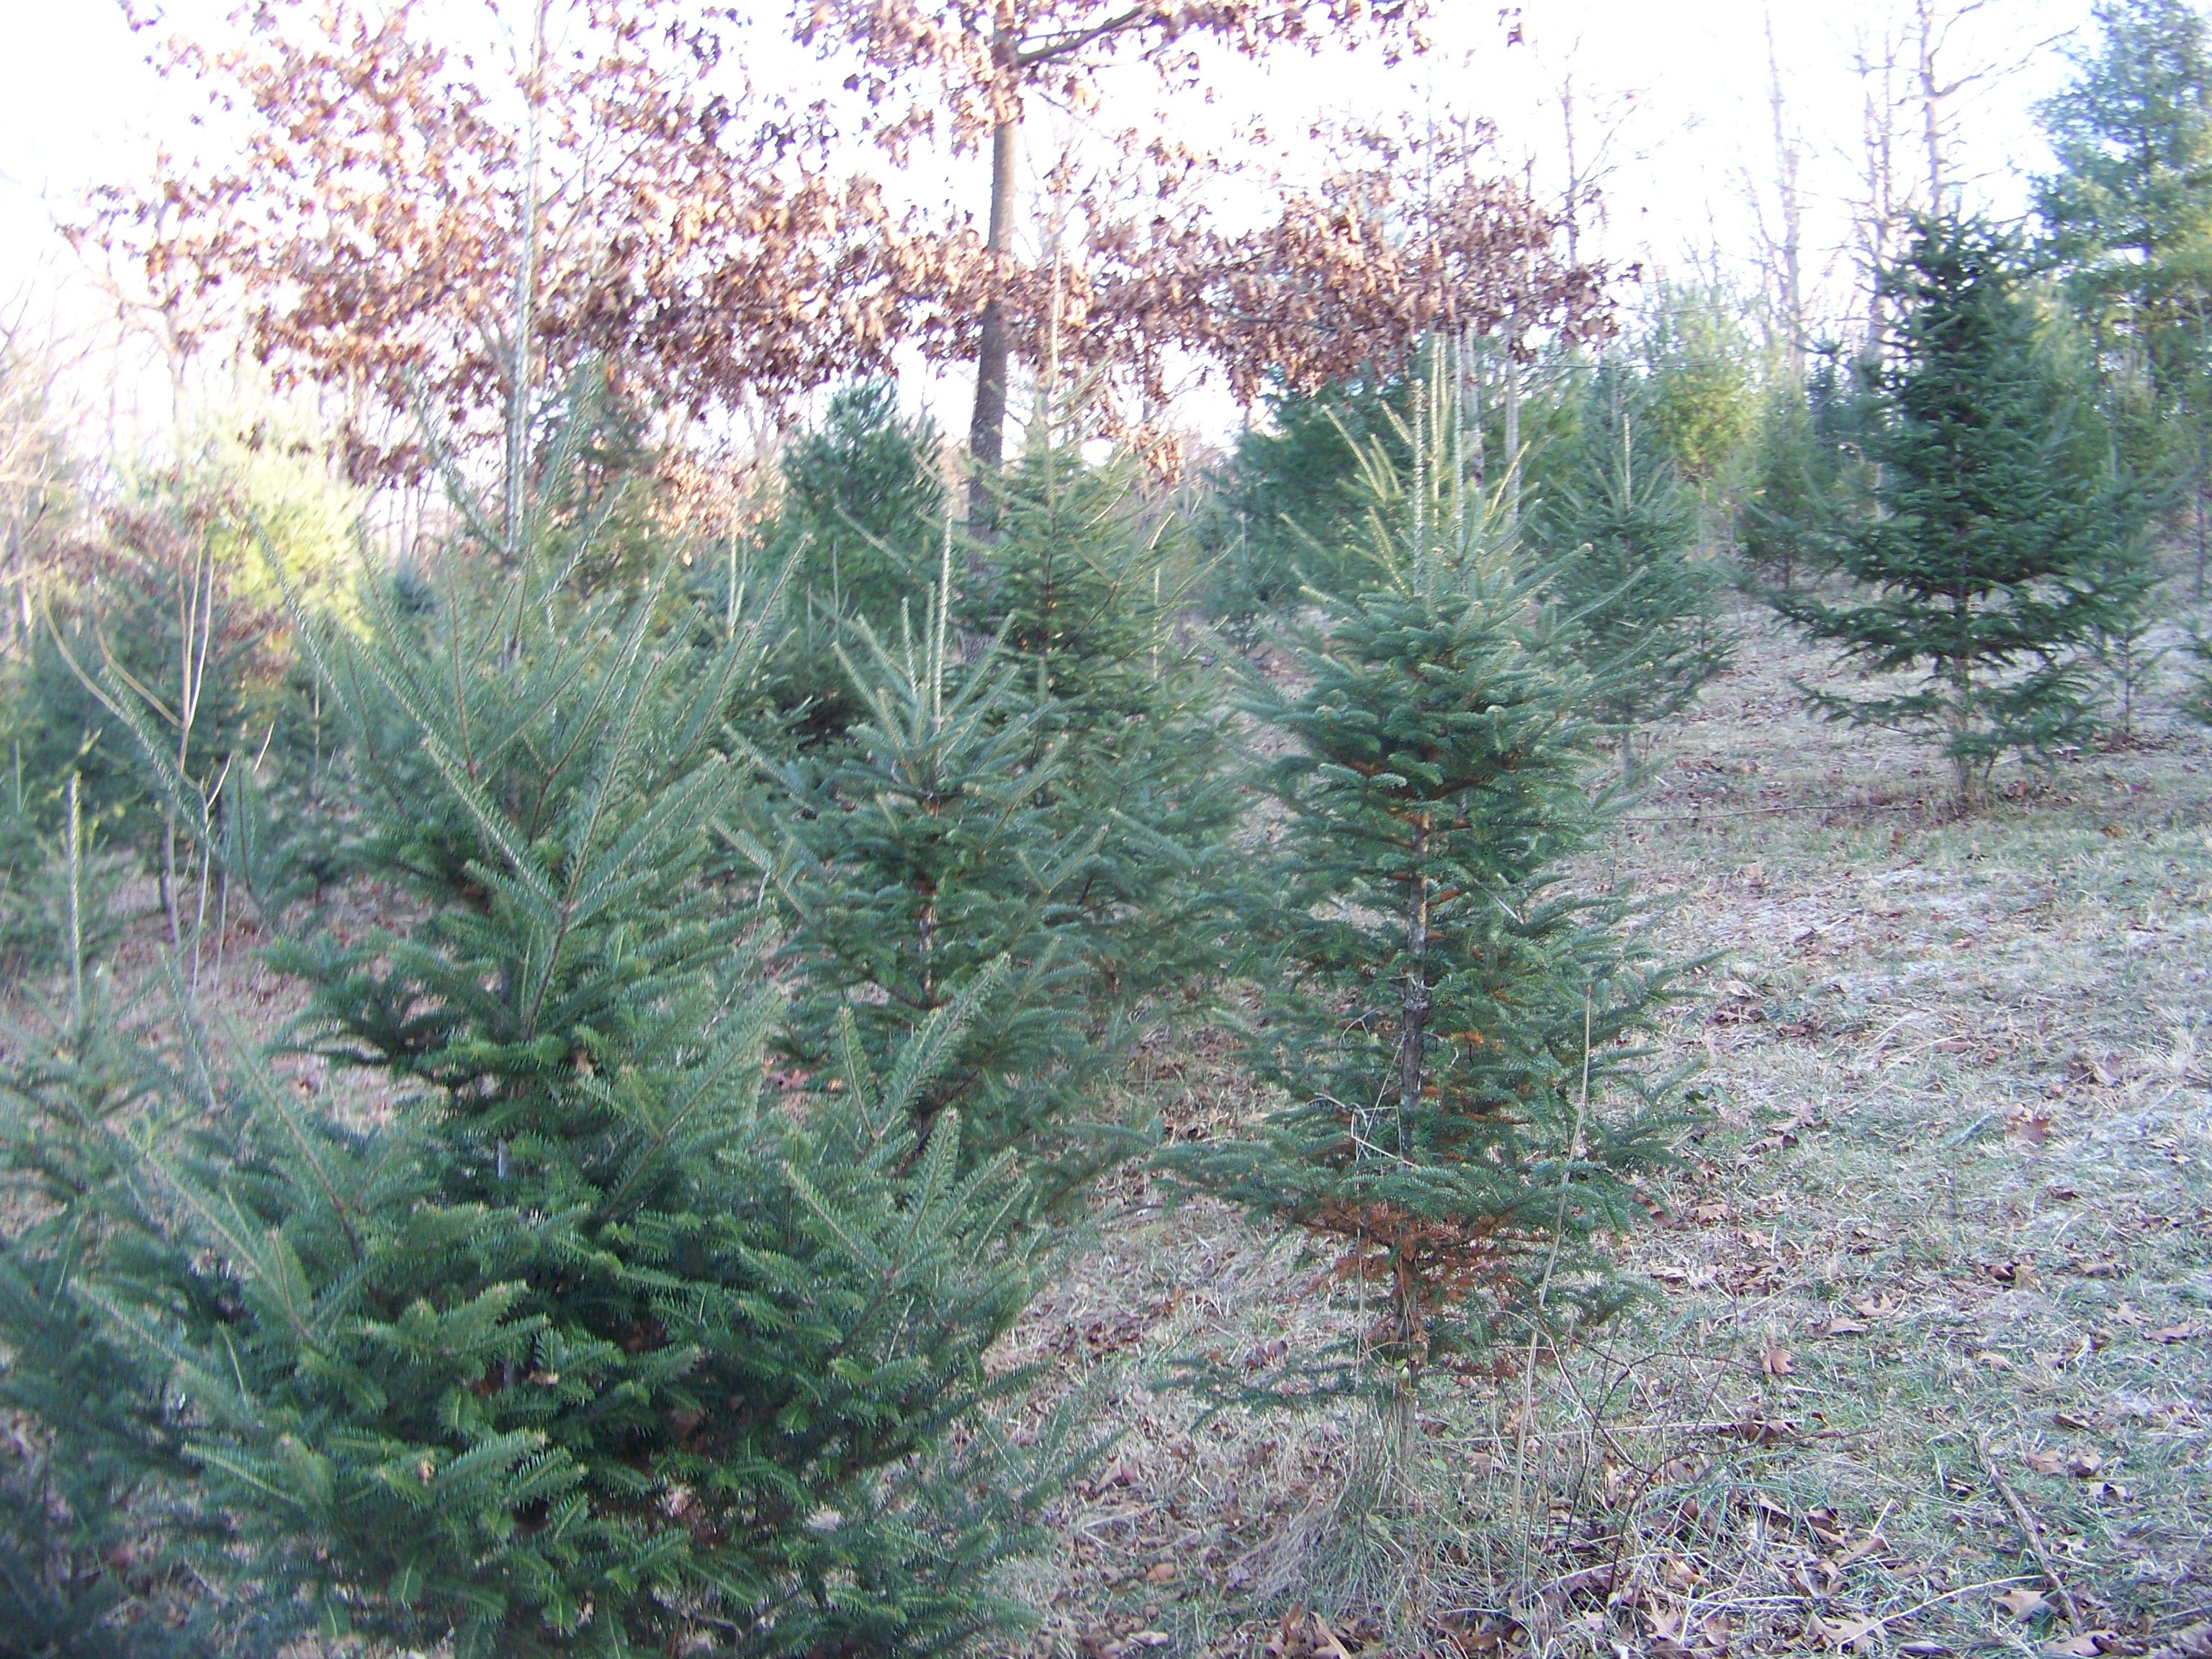 Cut Your Own Christmas Tree.Cut Your Own Christmas Tree In The Lehigh Valley Upper